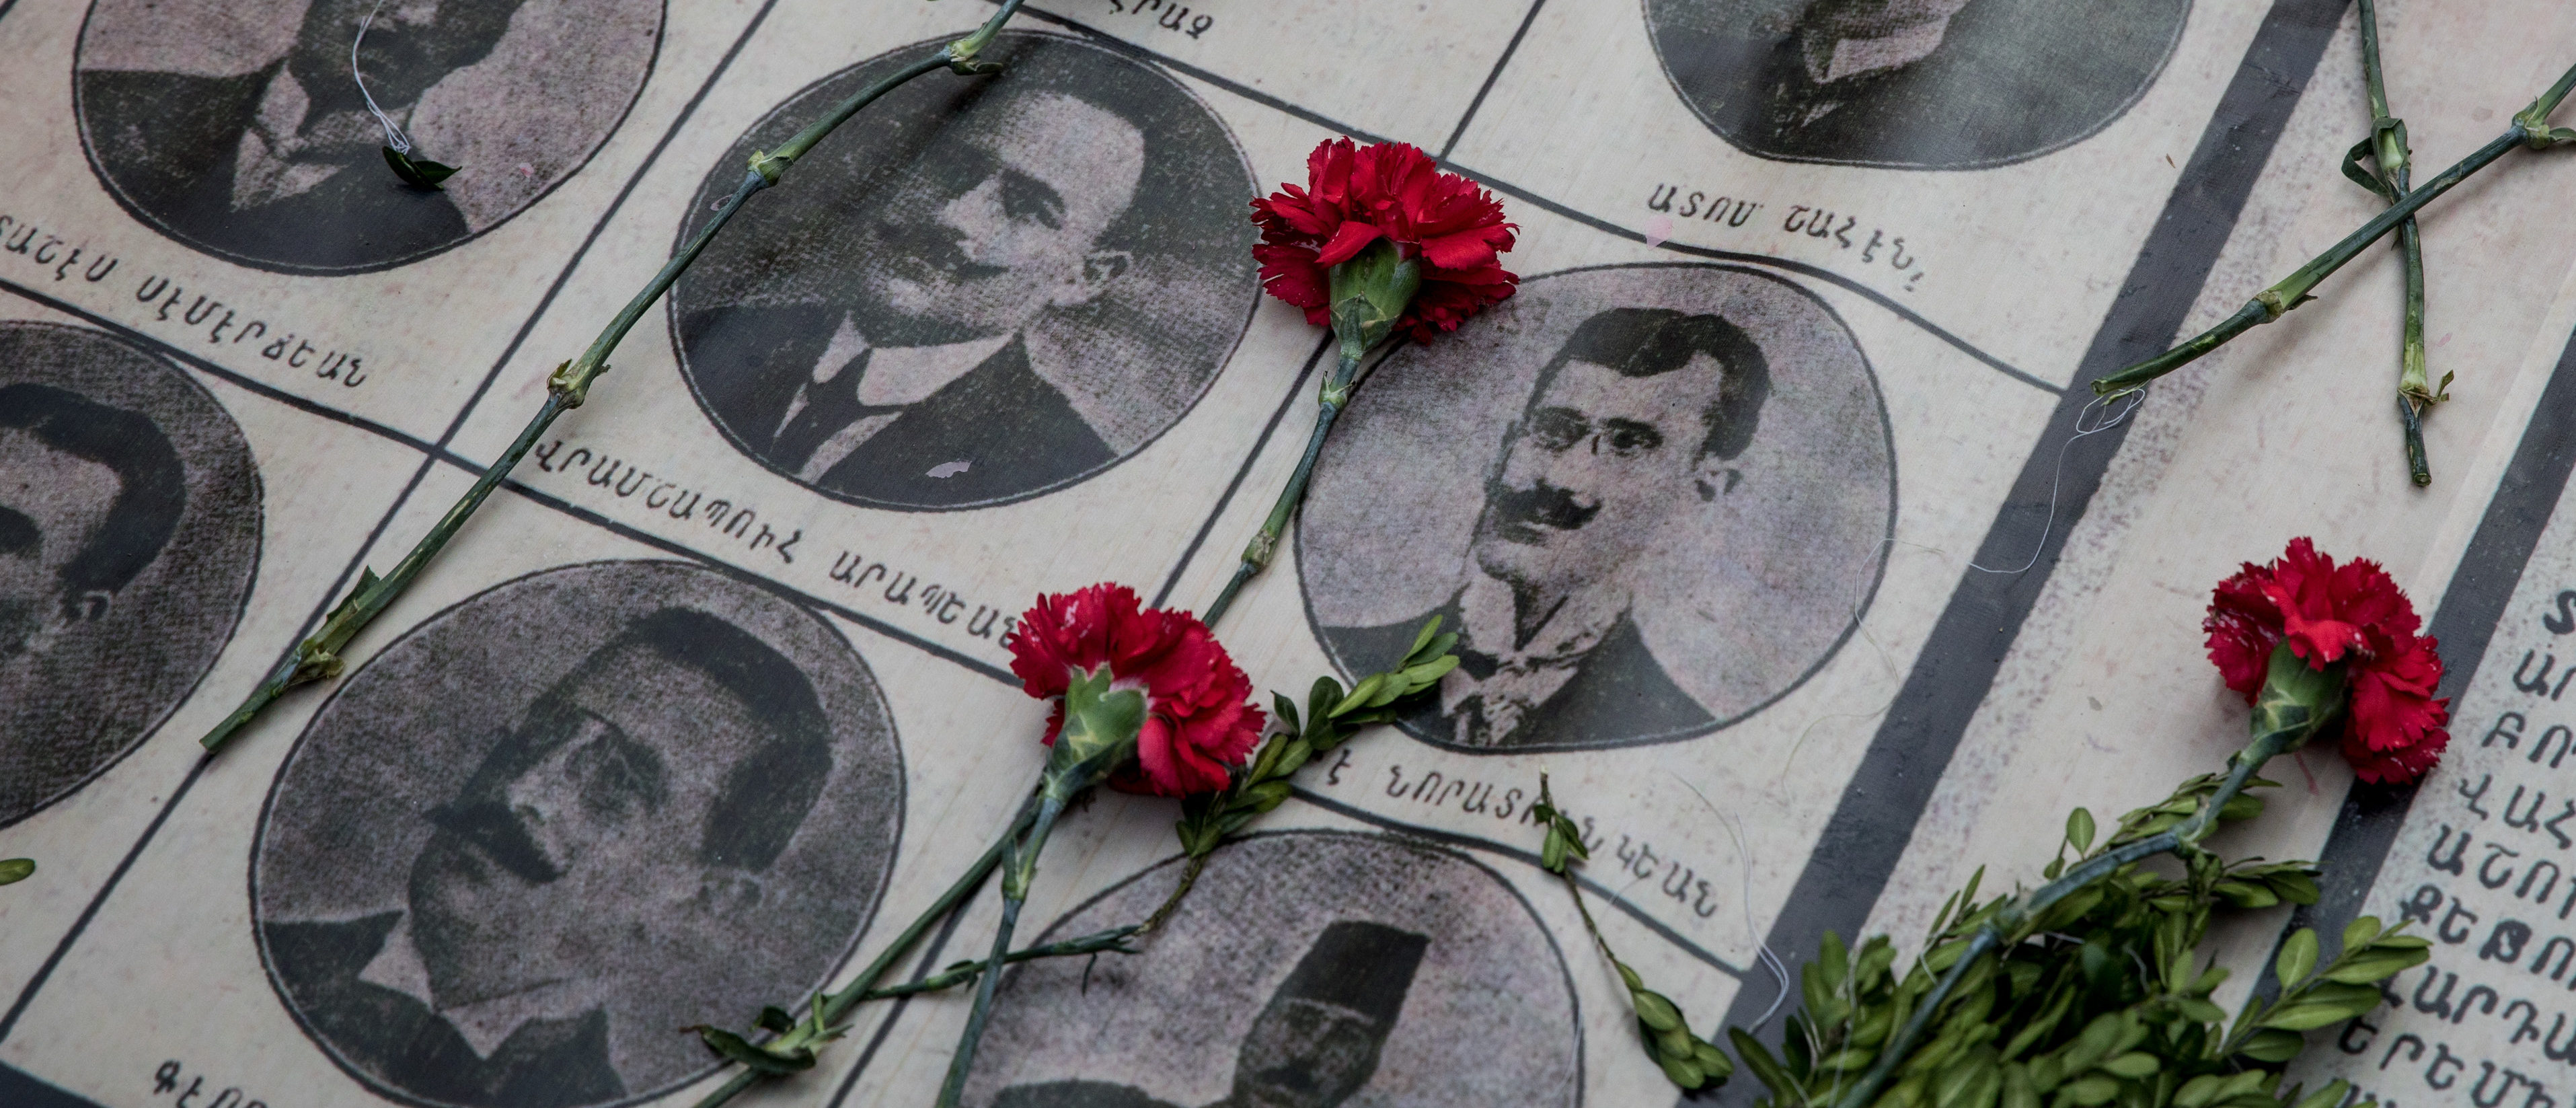 ISTANBUL, TURKEY - APRIL 24: Roses are seen on the portraits of victims during a memorial to commemorate the 1915 Armenian mass killings on April 24, 2018 in Istanbul, Turkey. People gathered to mark the 103rd anniversary of the slaughter of up to 1.5million Armenians by the Ottoman government in an event many view as genocide. (Photo by Chris McGrath/Getty Images)